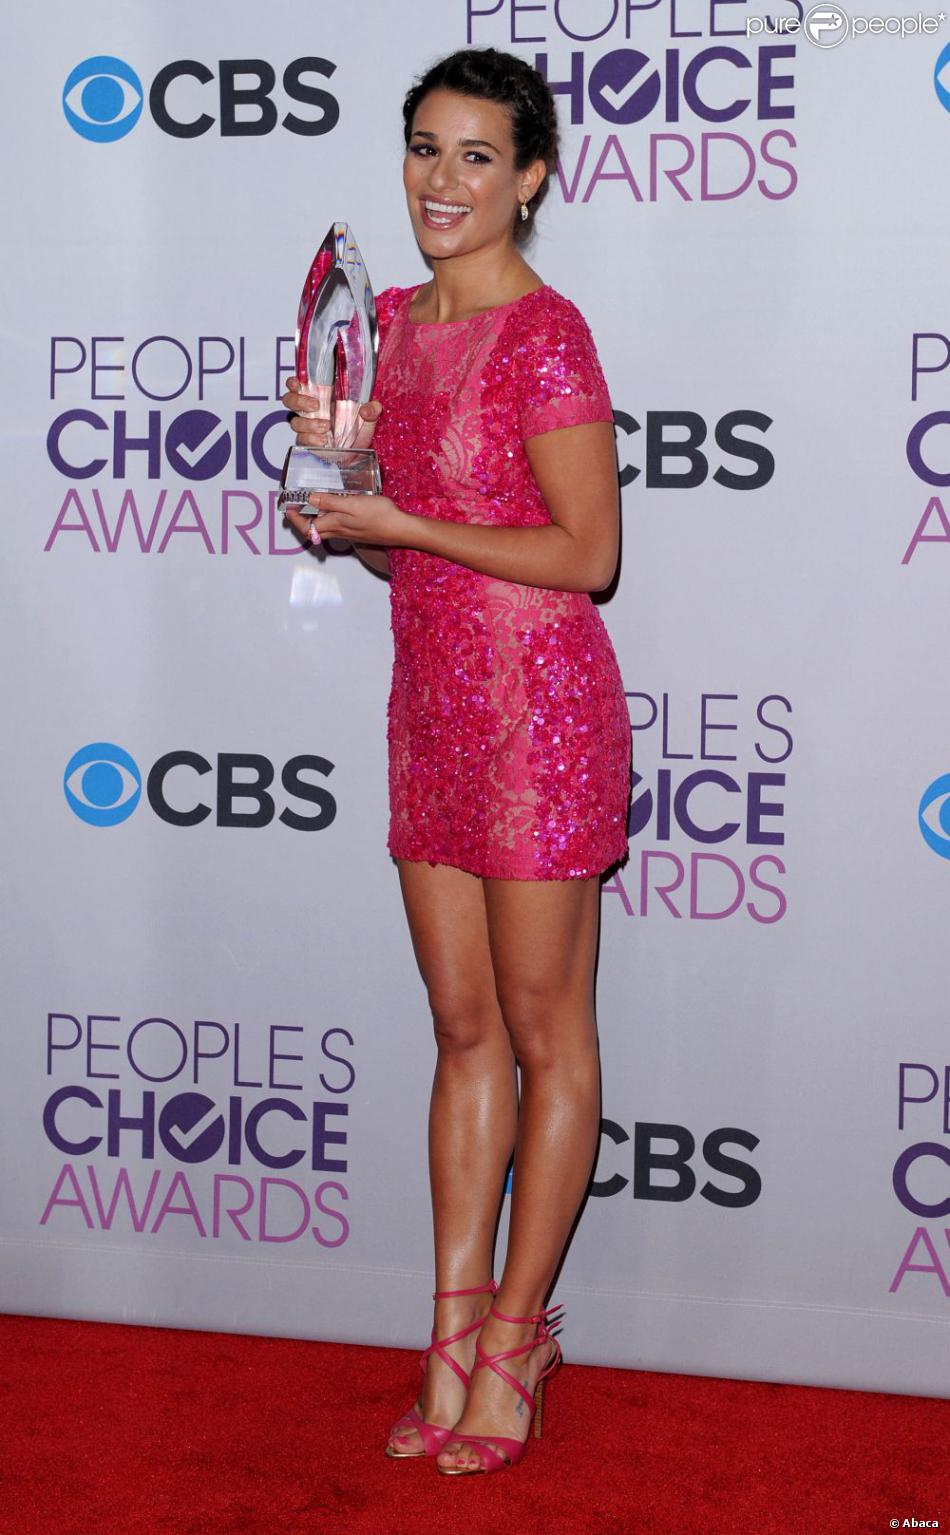 Lea Michele aux 39e People's Choice Awards au Dolby Theatre à Los Angeles, le 9 janvier 2013.